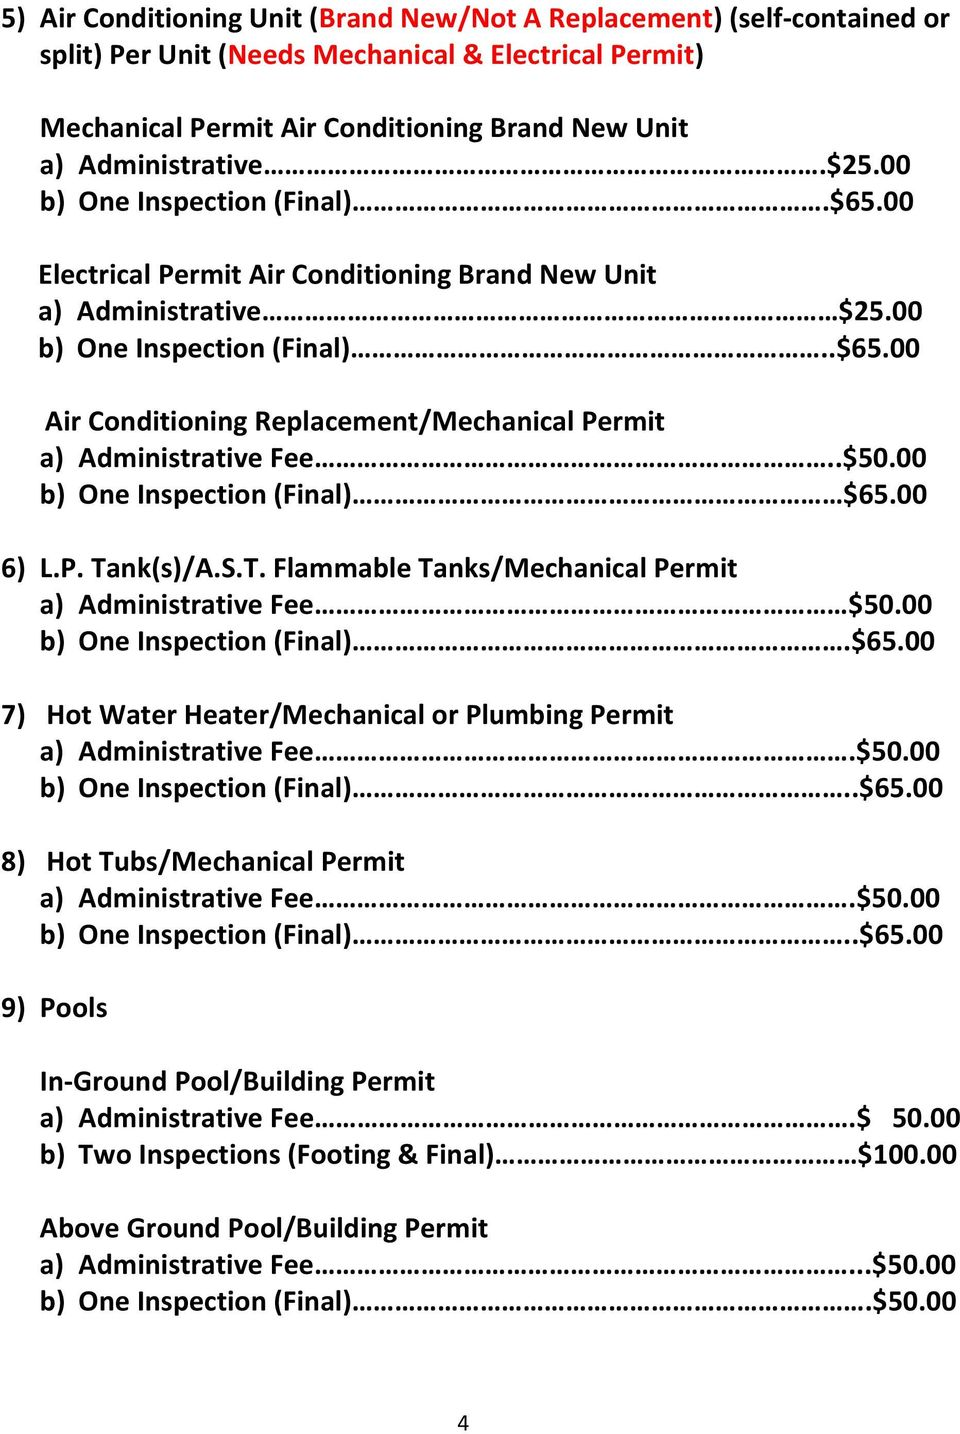 .$50.00 b) One Inspection (Final) $65.00 6) L.P. Tank(s)/A.S.T. Flammable Tanks/Mechanical Permit a) Administrative Fee $50.00 b) One Inspection (Final).$65.00 7) Hot Water Heater/Mechanical or Plumbing Permit a) Administrative Fee.